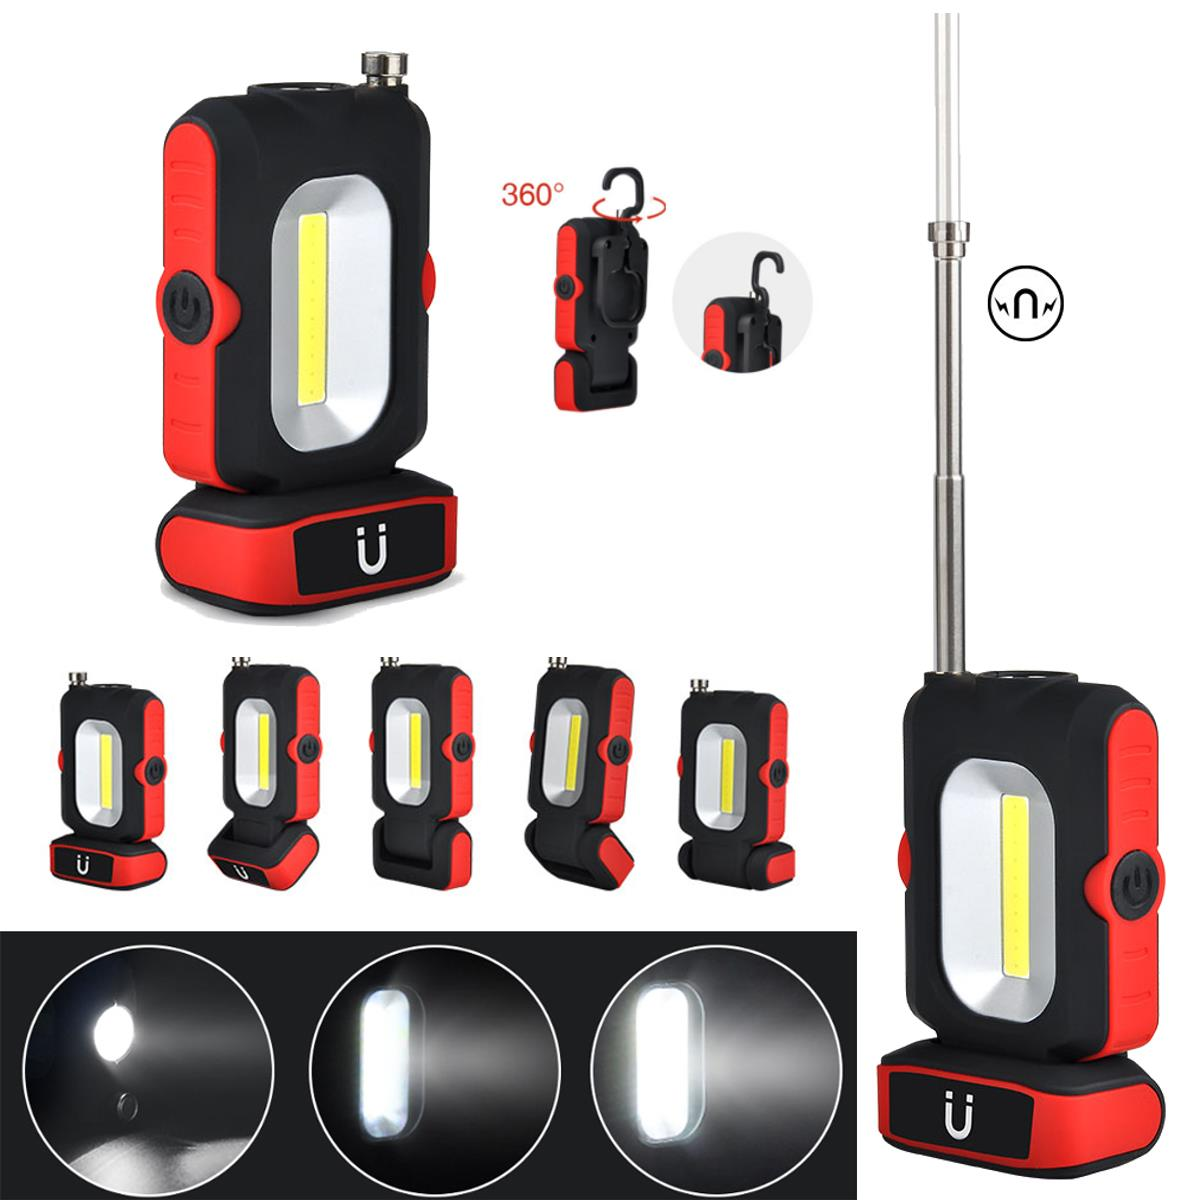 5 in1 XANES LF01 LED+COB Stretchable Magnetic Tail & Antenna Picker USB Rechargeable Work Light EDC Flashlight